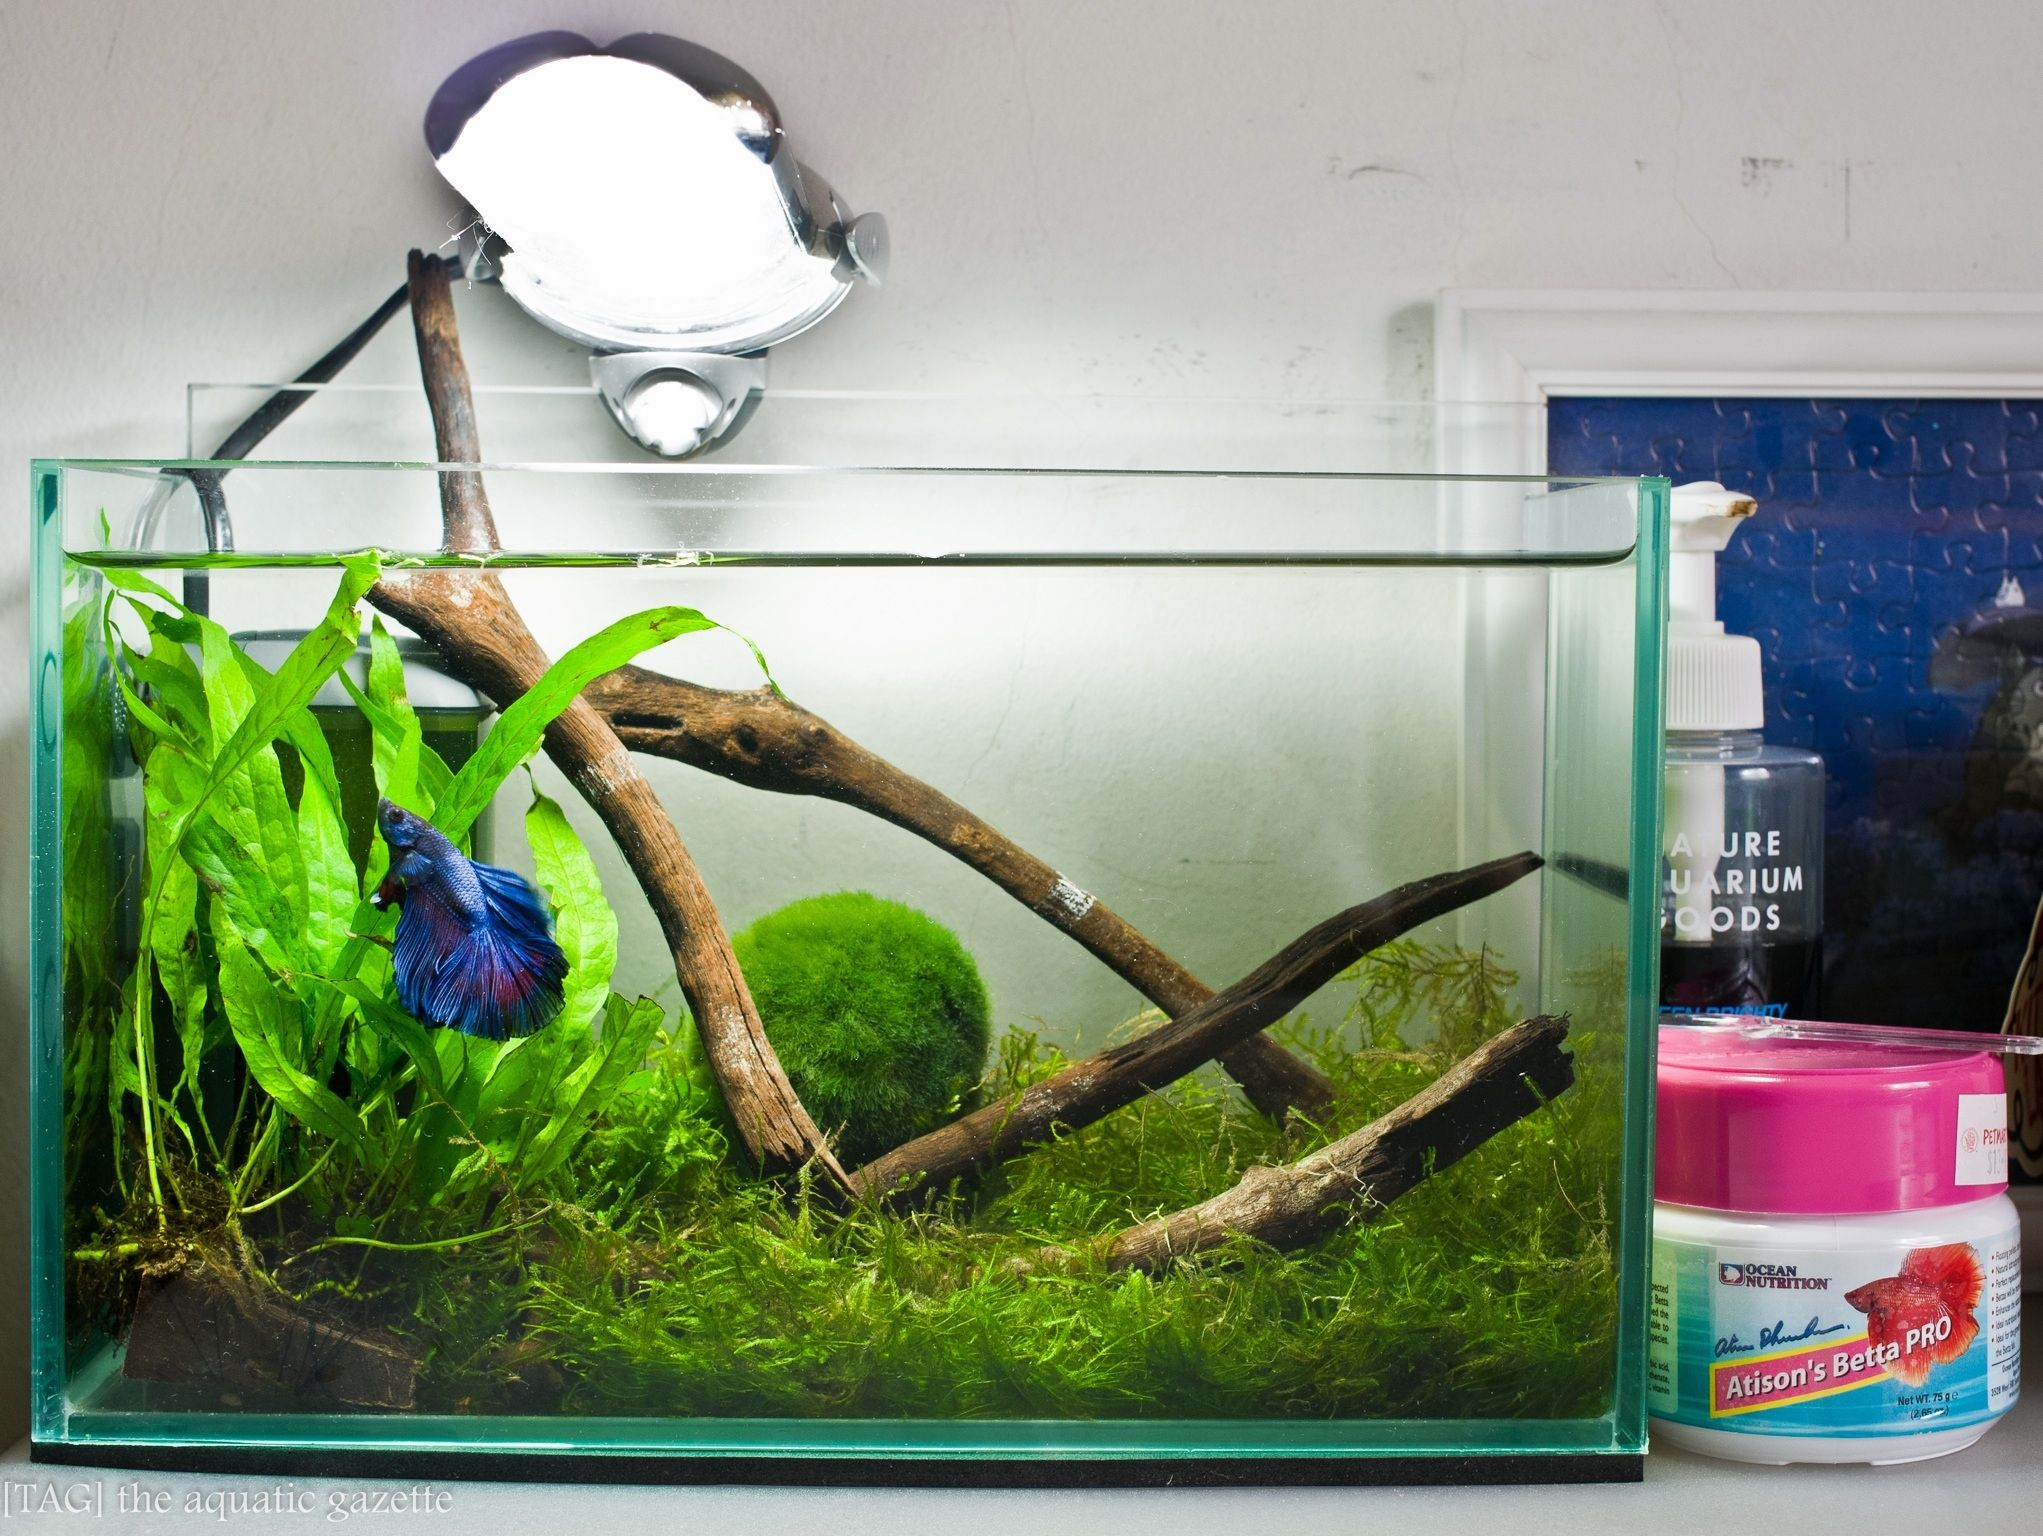 Fish aquarium is good in home - So Much More Beautiful Than A Small Dirty Bowl All Those Plants Help Keep His